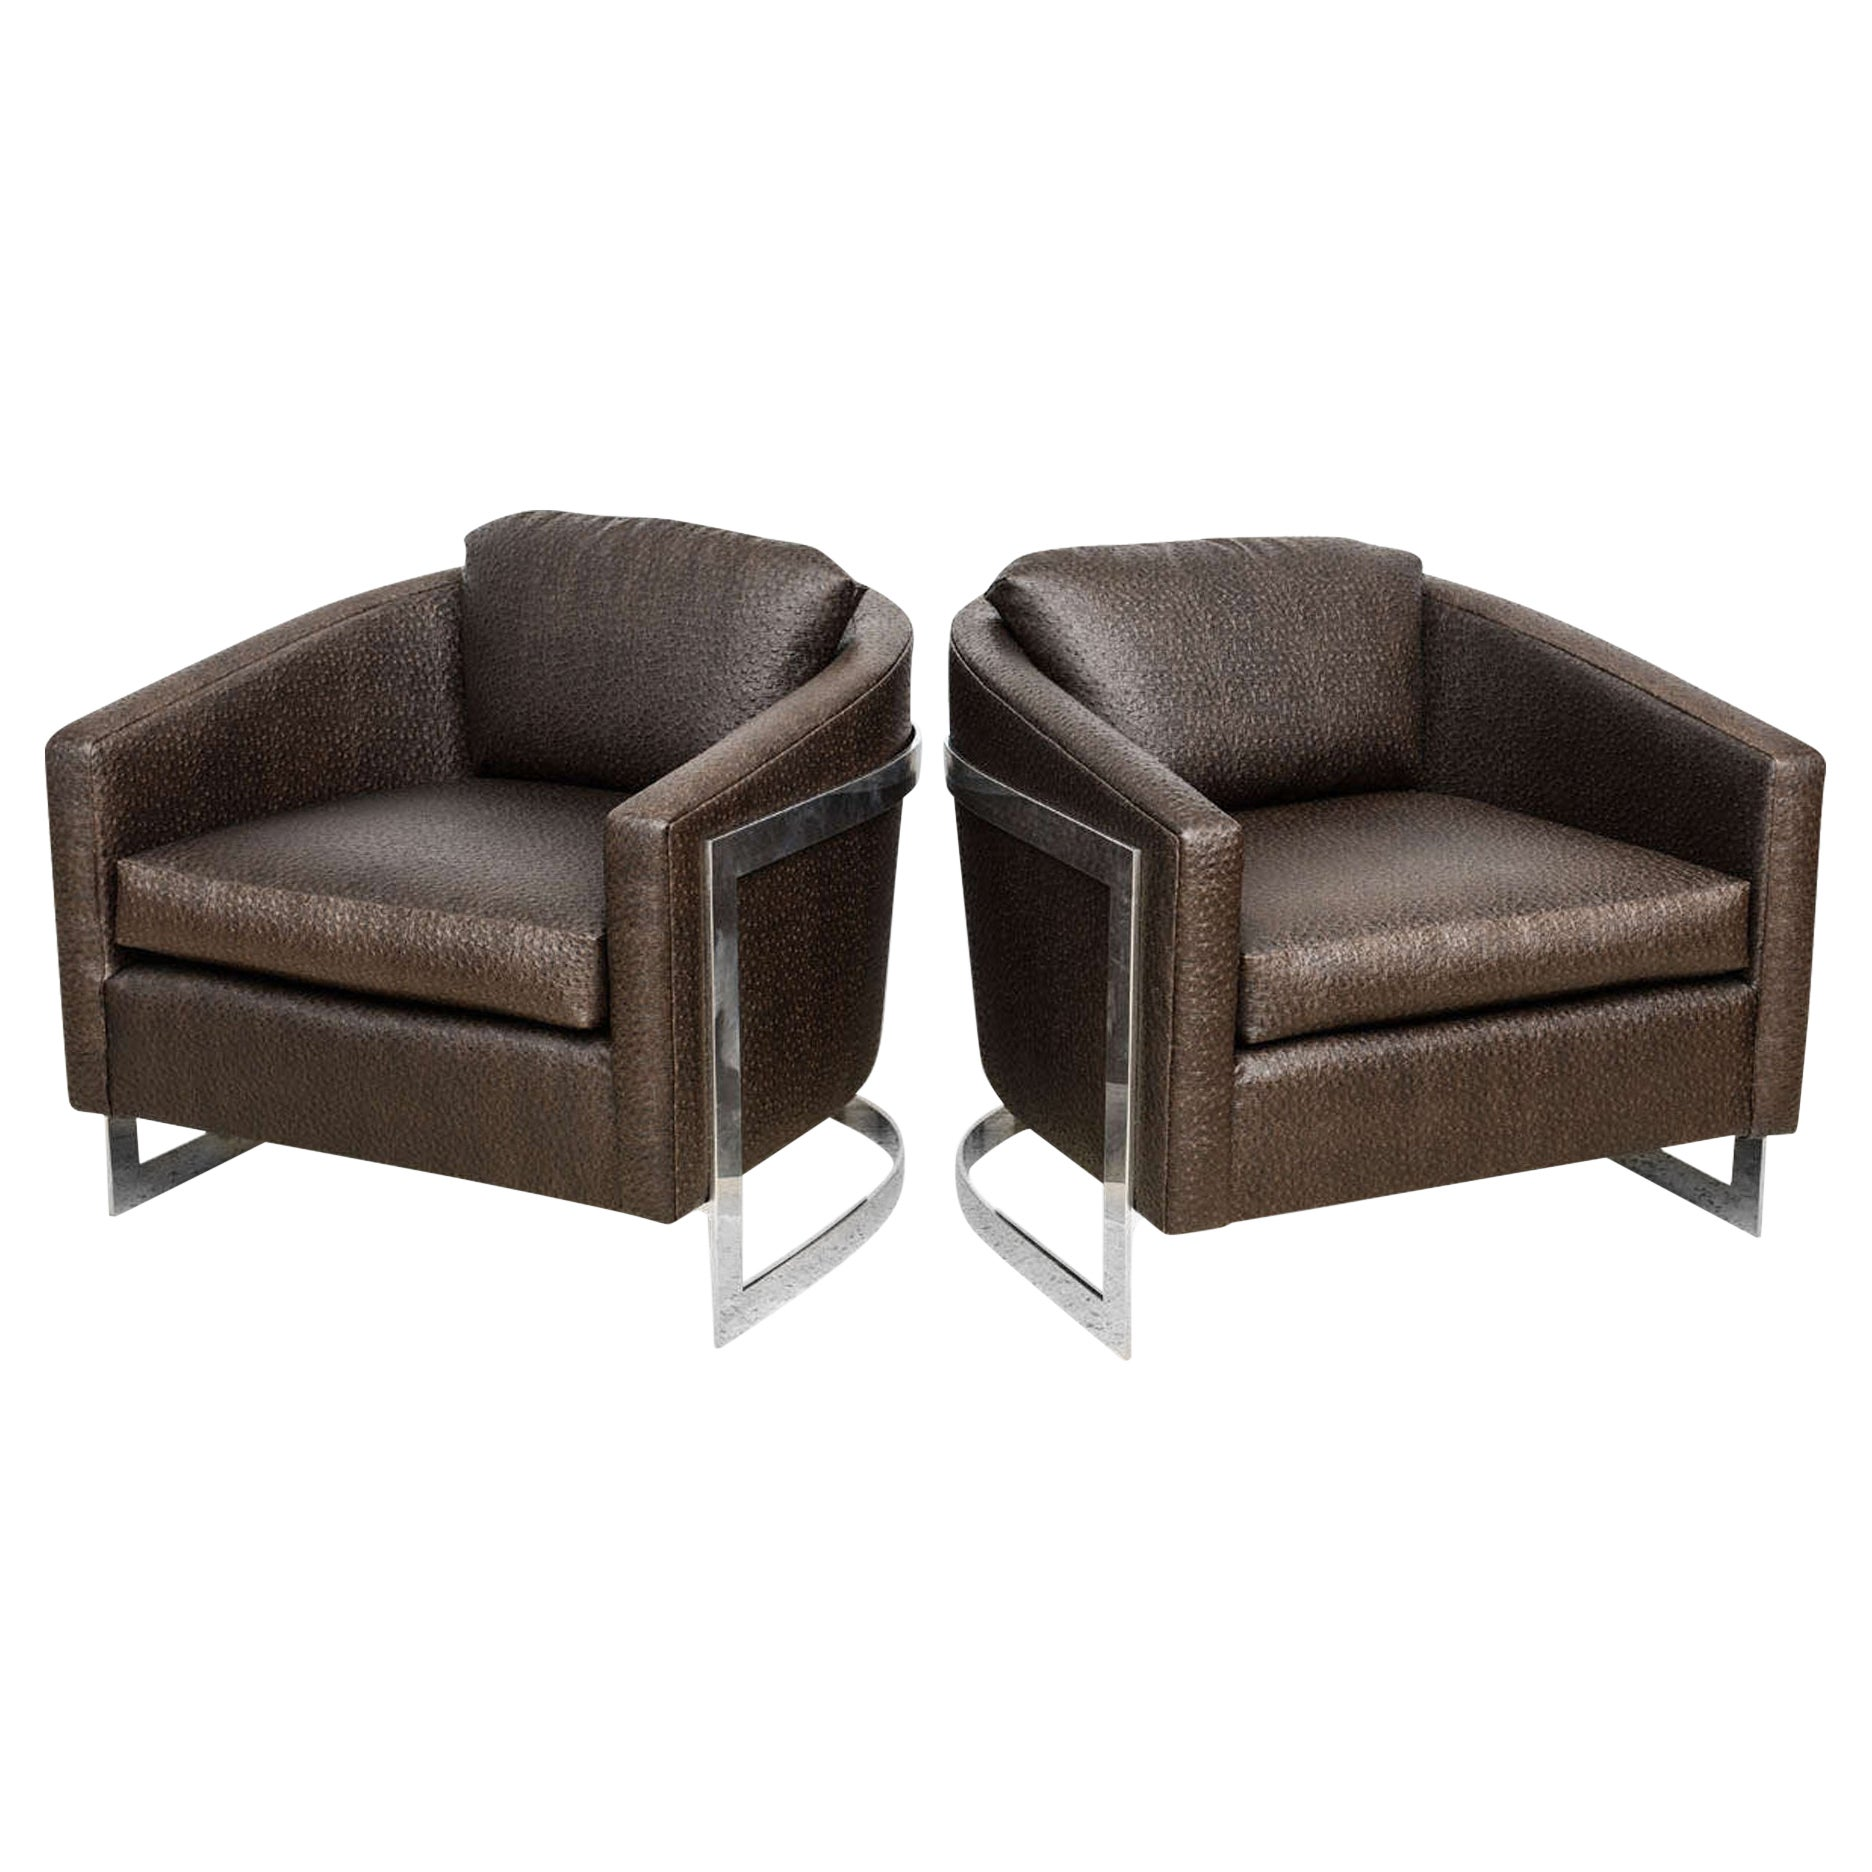 """Pair of Milo Baughman Polished Chrome and """"Ostrich"""" Upholstered Chairs"""